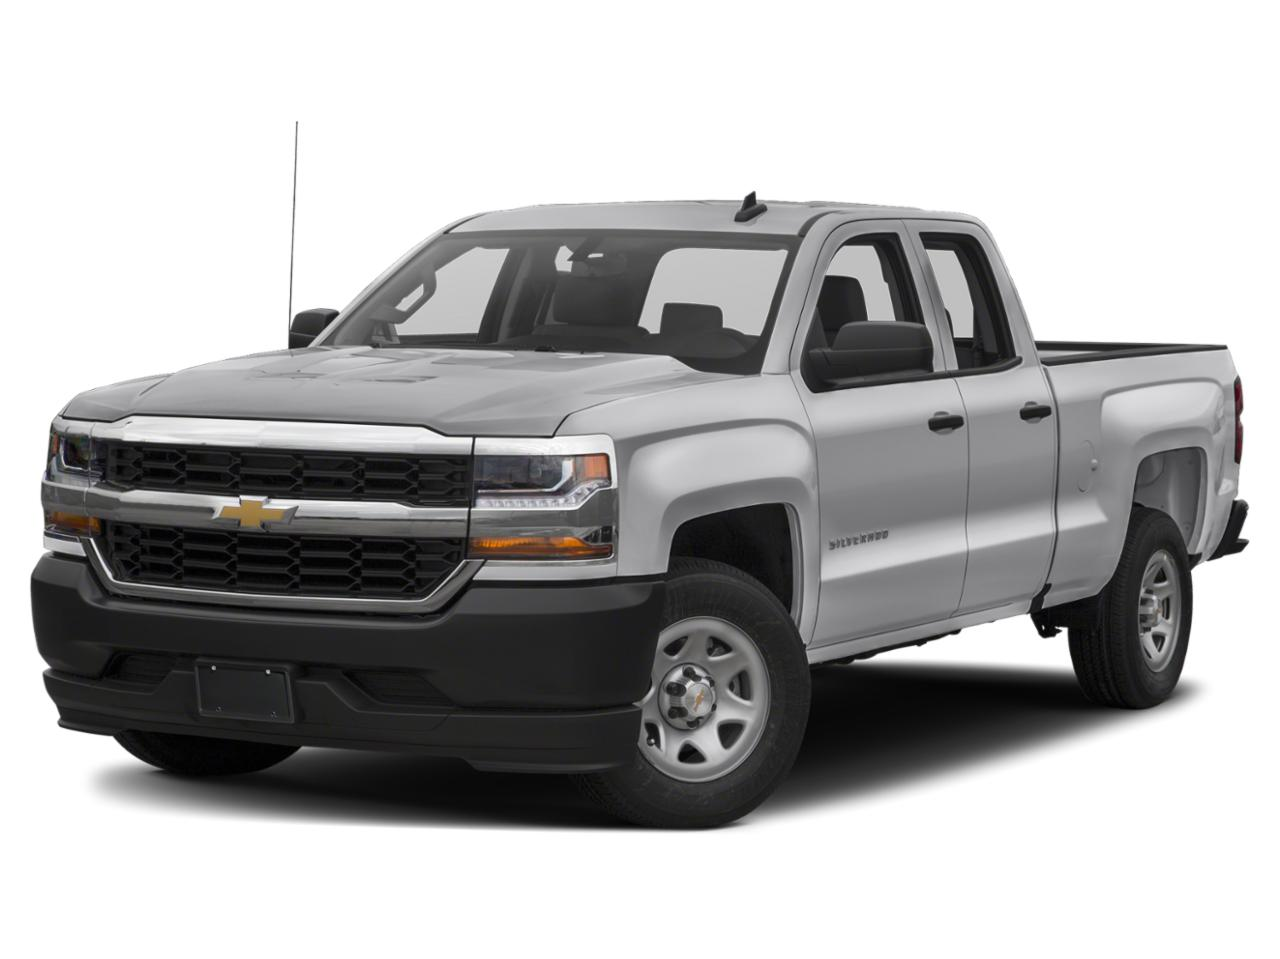 2019 Chevrolet Silverado 1500 LD Vehicle Photo in Redwood Falls, MN 56283